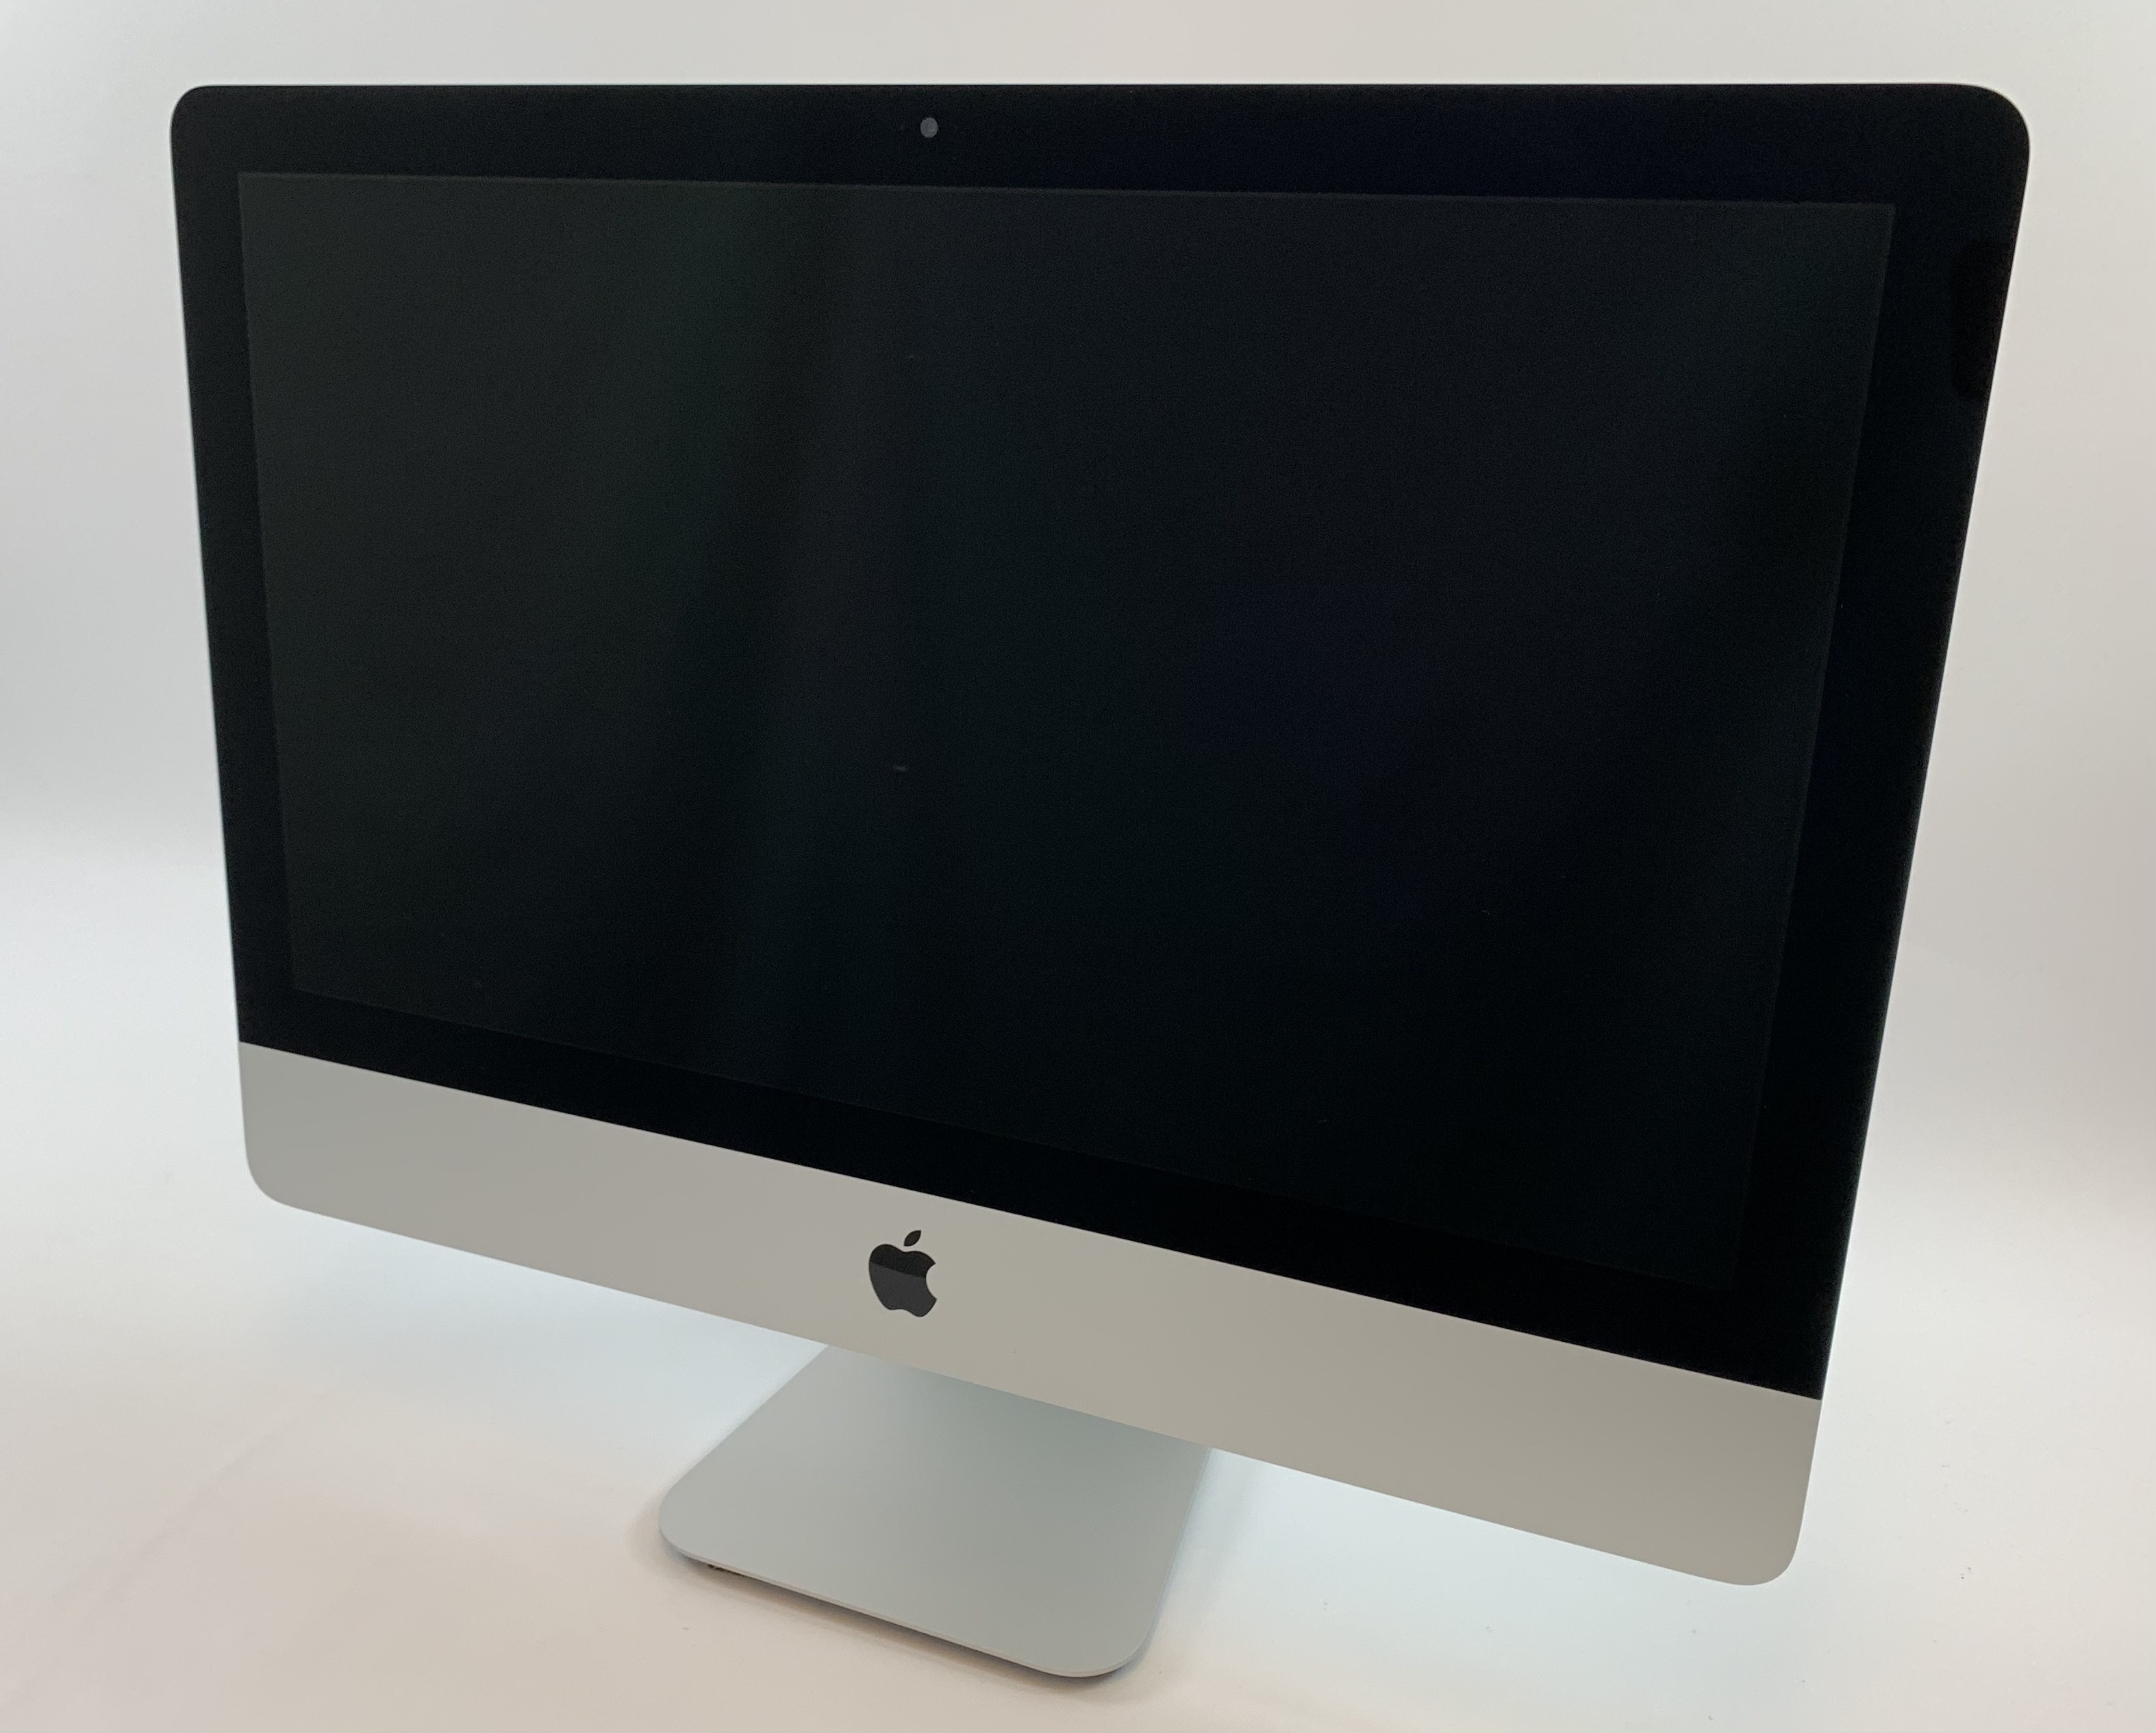 "iMac 21.5"" Mid 2017 (Intel Core i5 2.3 GHz 8 GB RAM 1 TB HDD), Intel Core i5 2.3 GHz, 8 GB RAM, 1 TB HDD, Afbeelding 1"